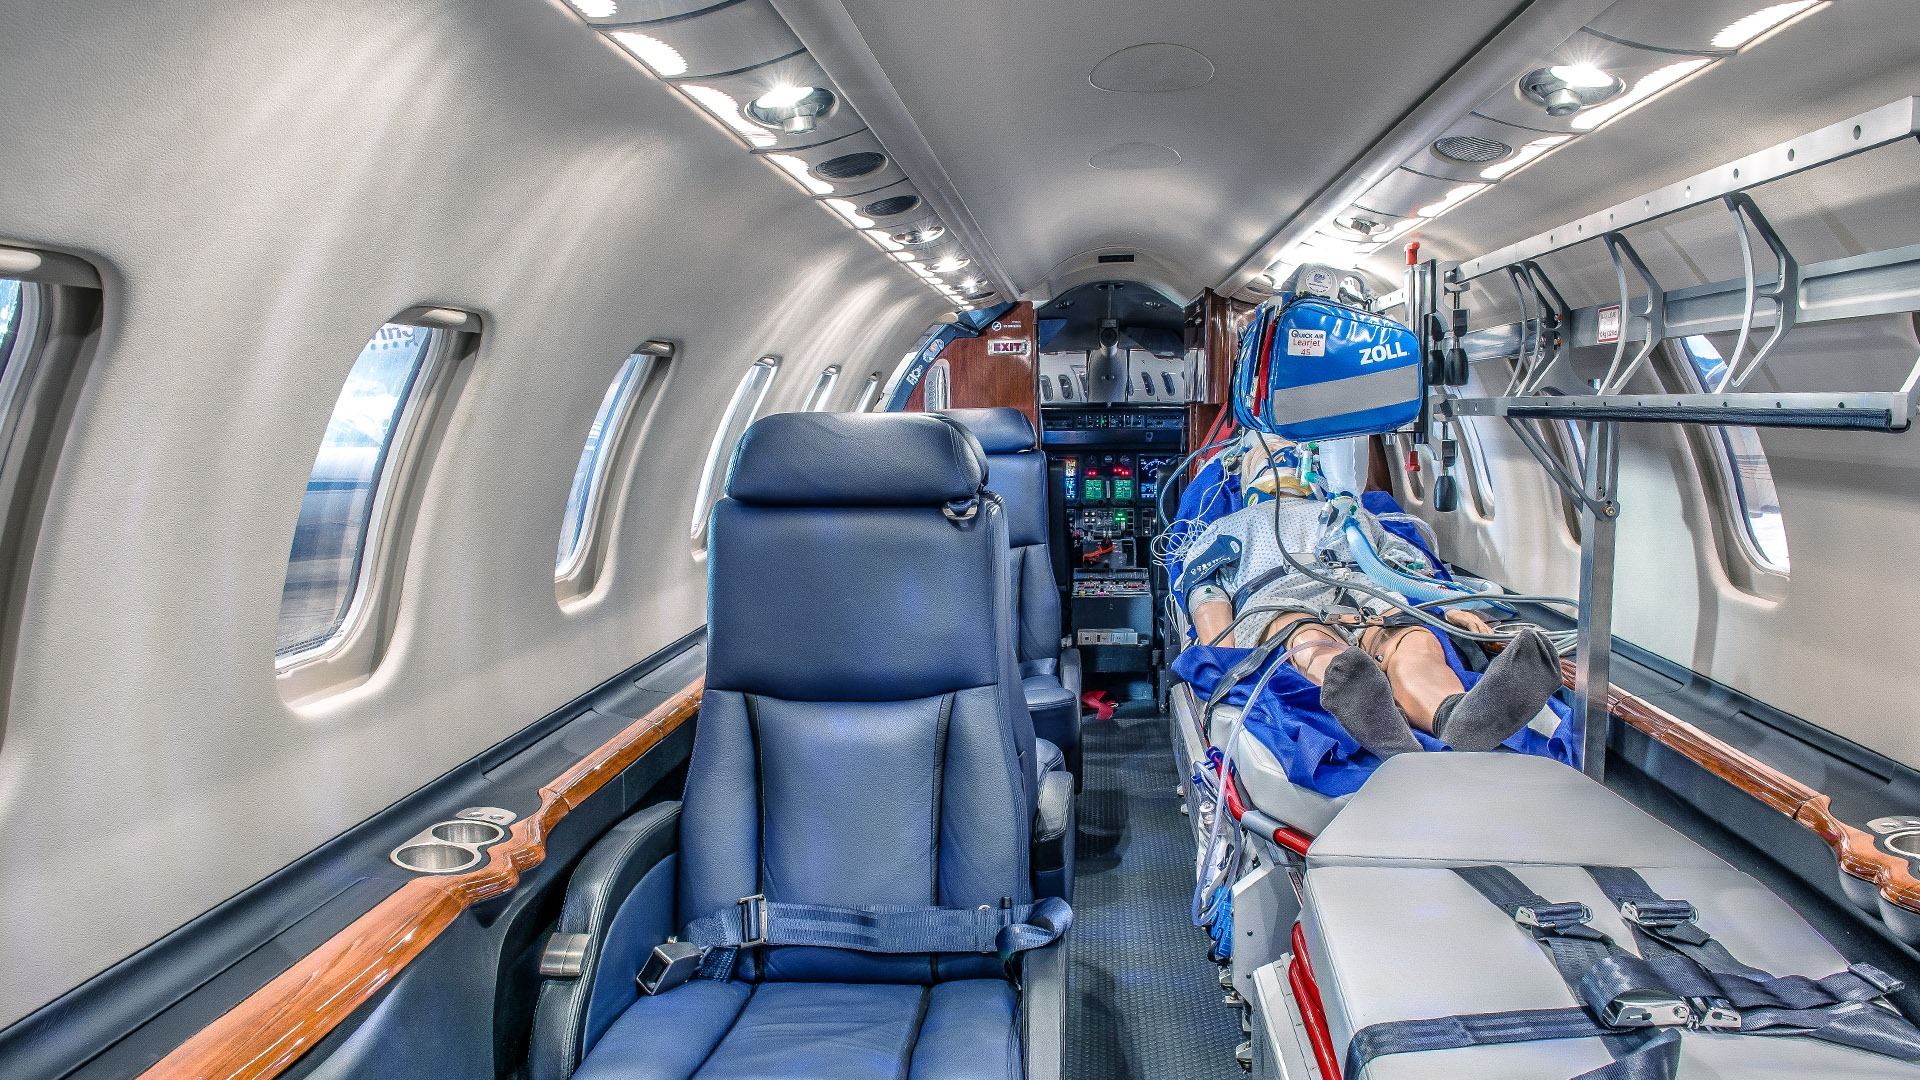 The impact of Covid restrictions on Medevac ops